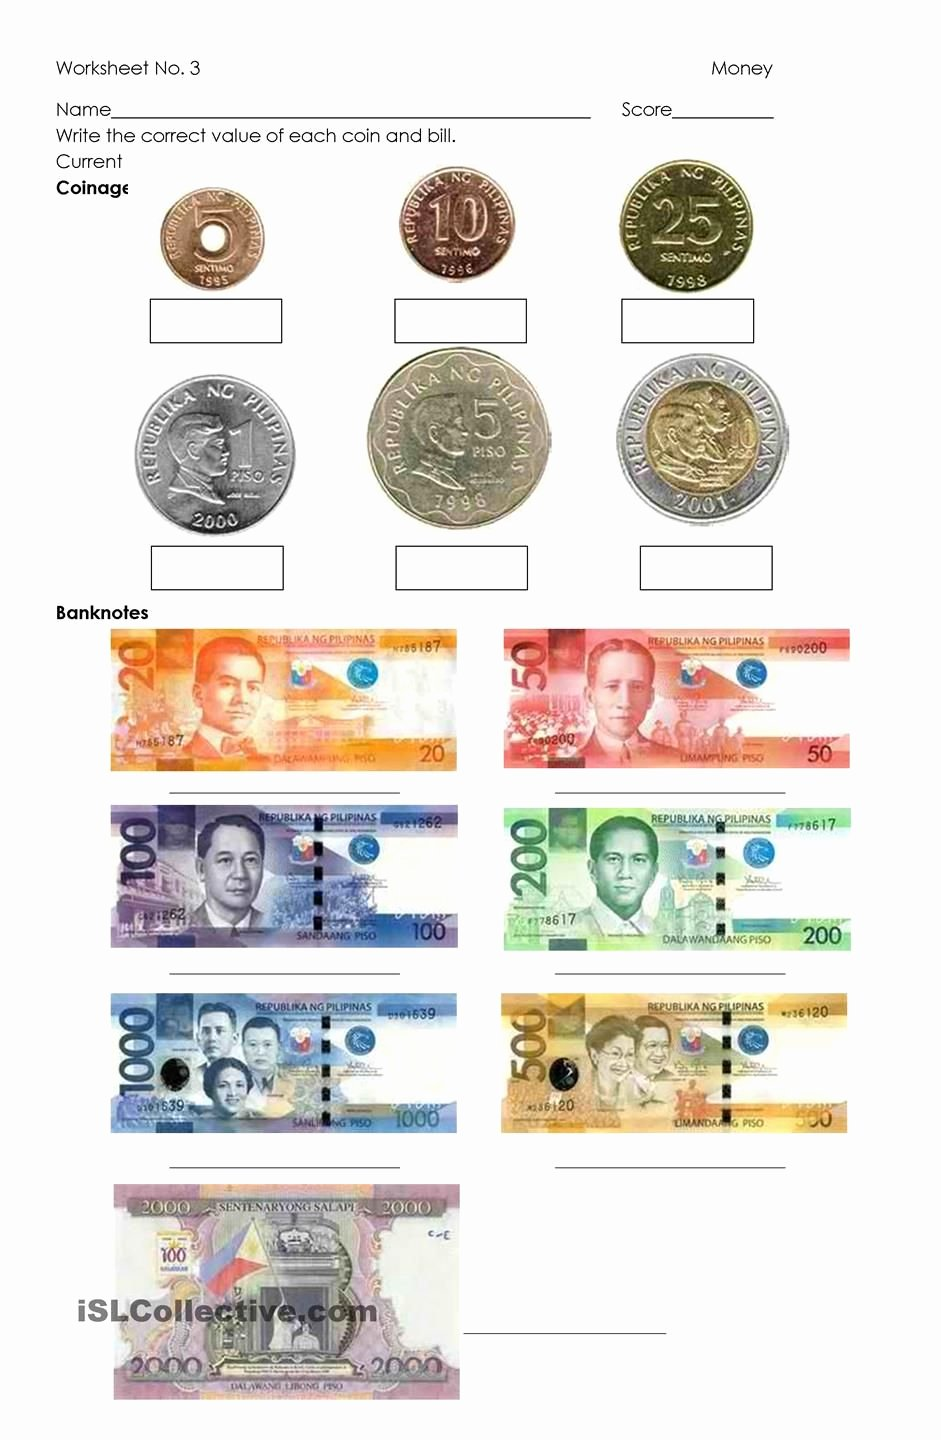 Philippine Money Worksheets for Preschoolers New Money Philippine Coins and Bills